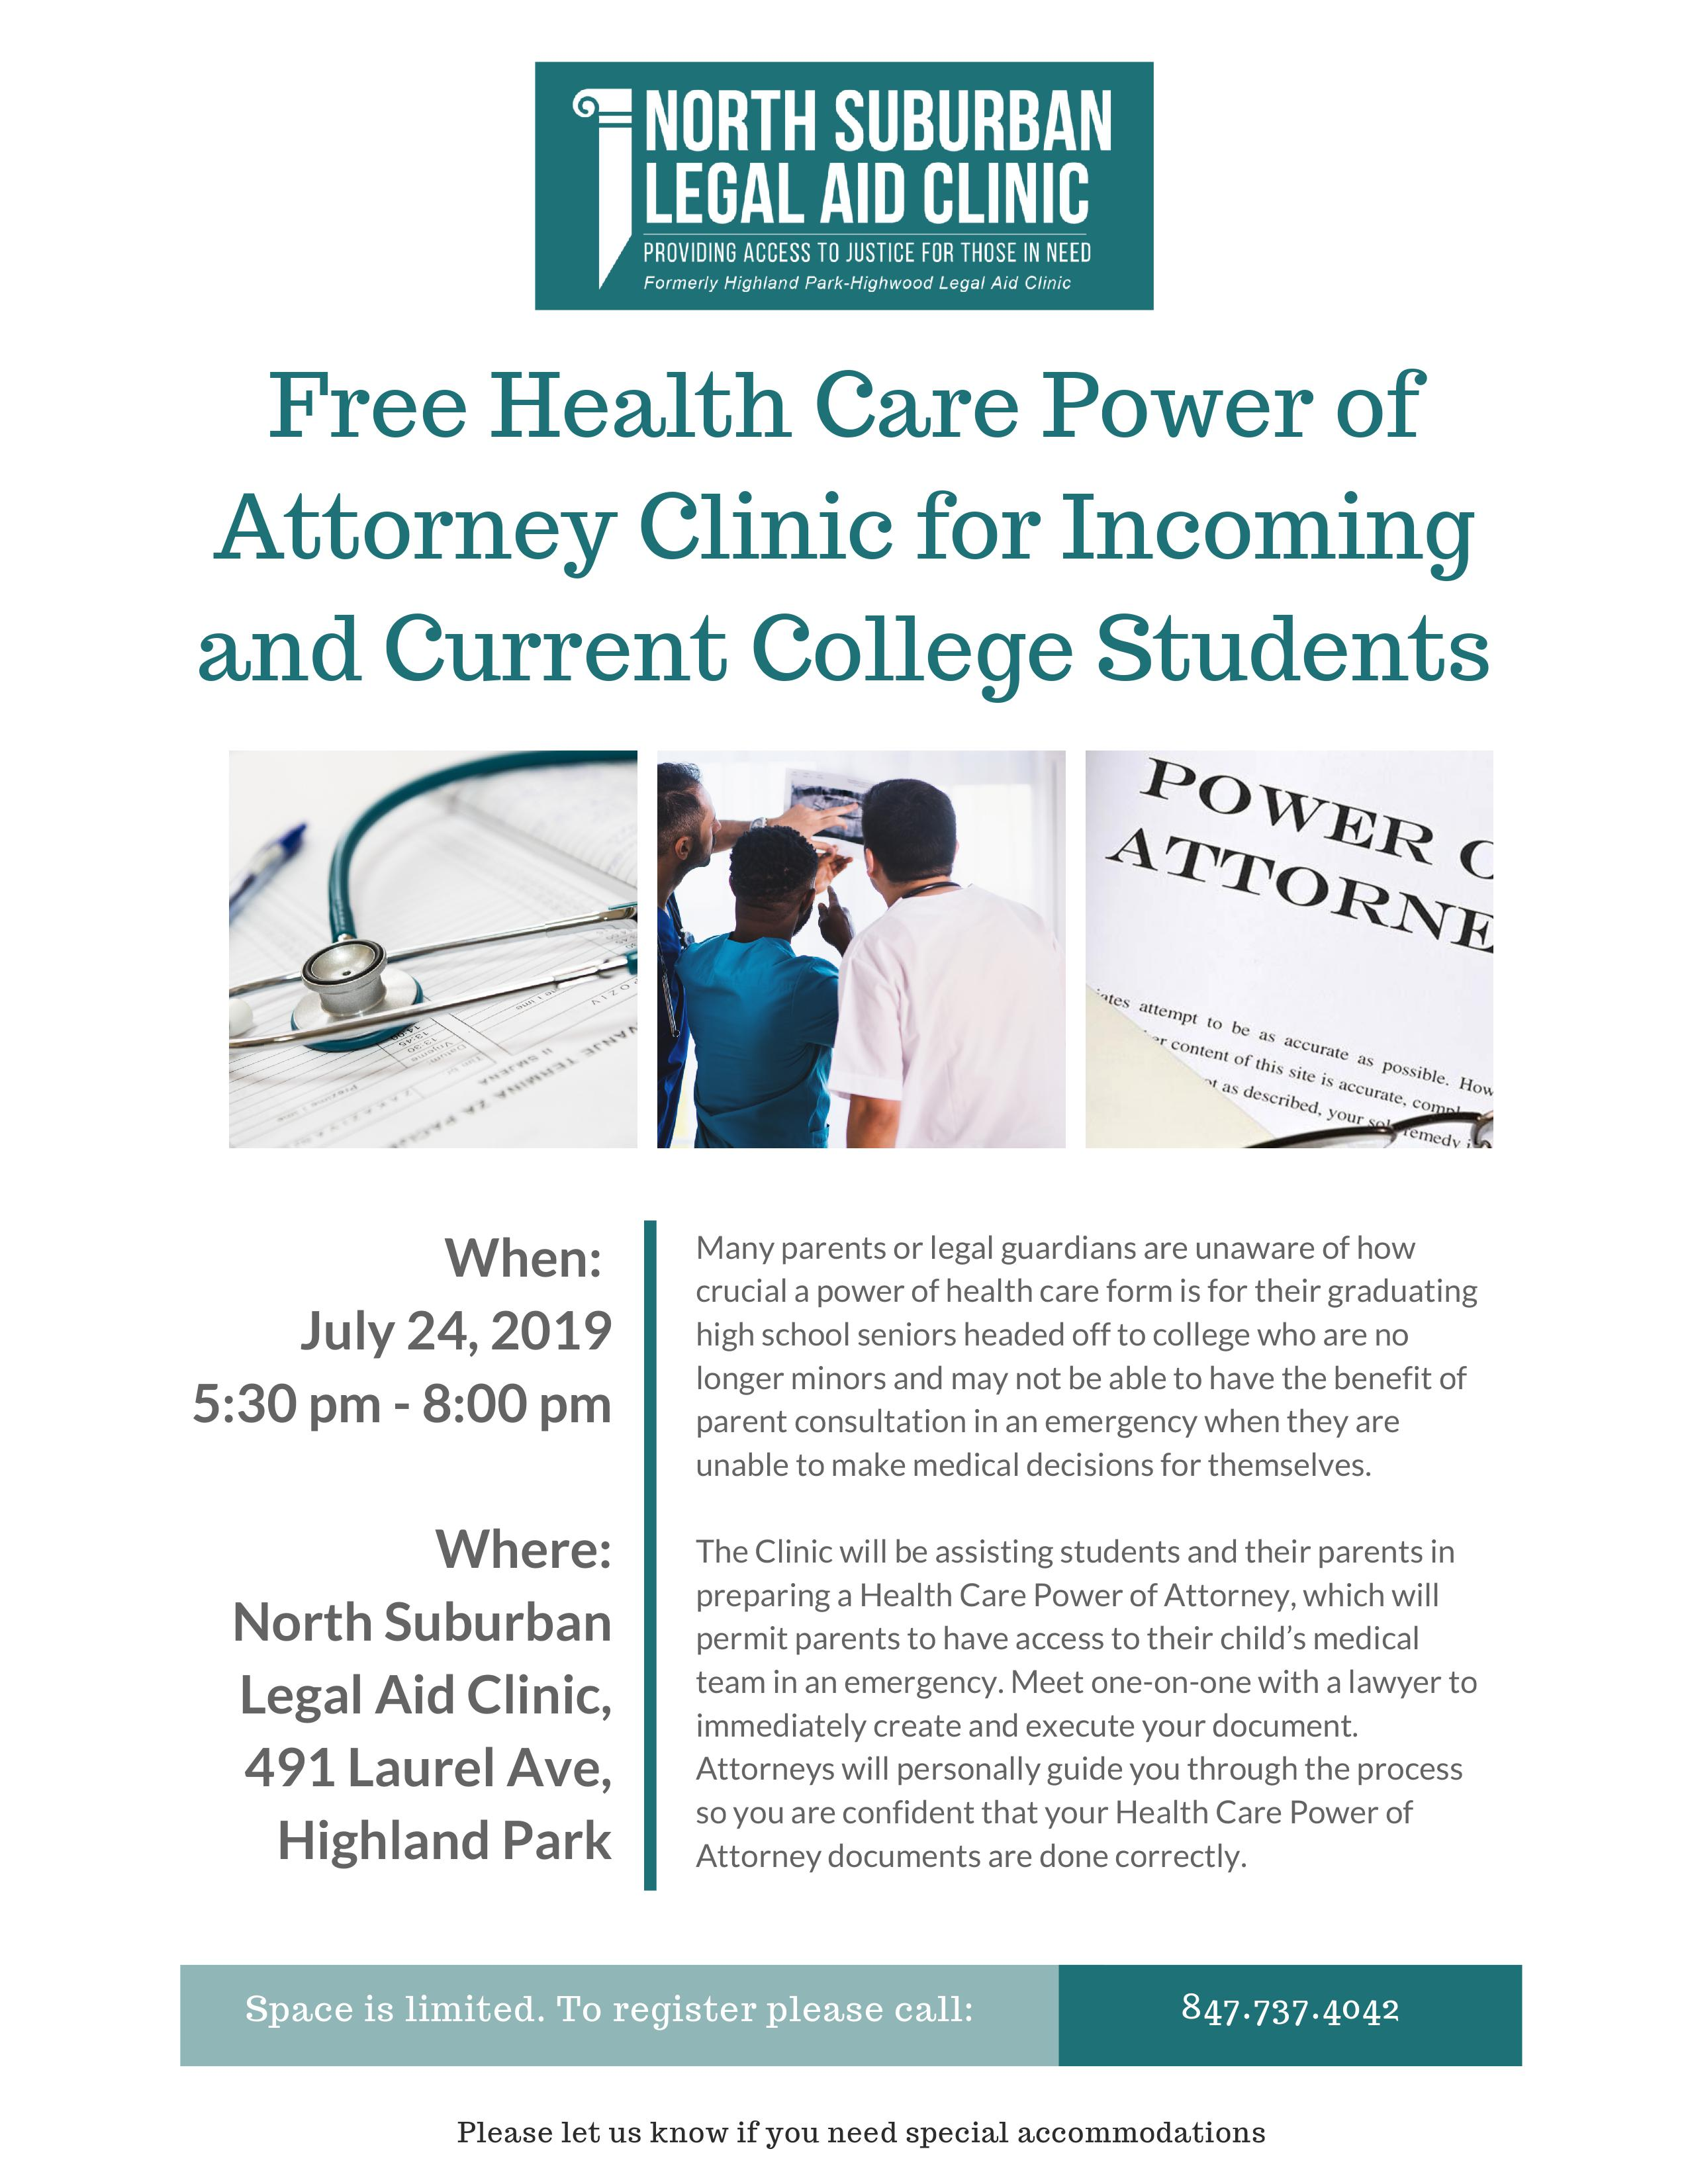 Health Care Power of Attorney Clinic for Graduating Seniors